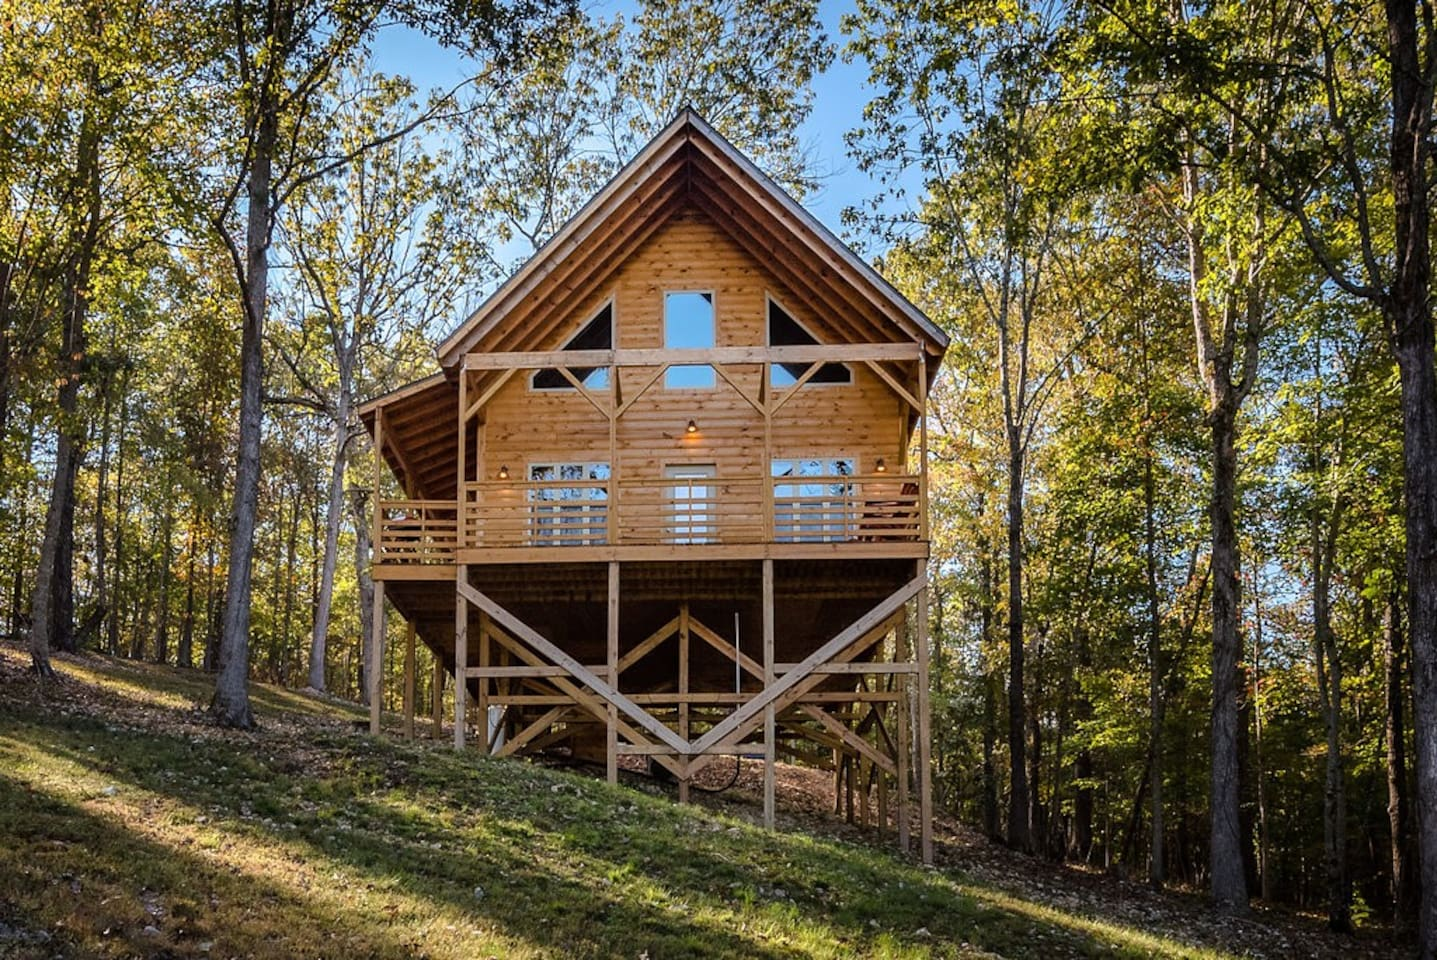 ha comfortable area luxury s from and near yards deal arkansas bed beach the cabin hotels jasper in property conservation equipped cabins image well home